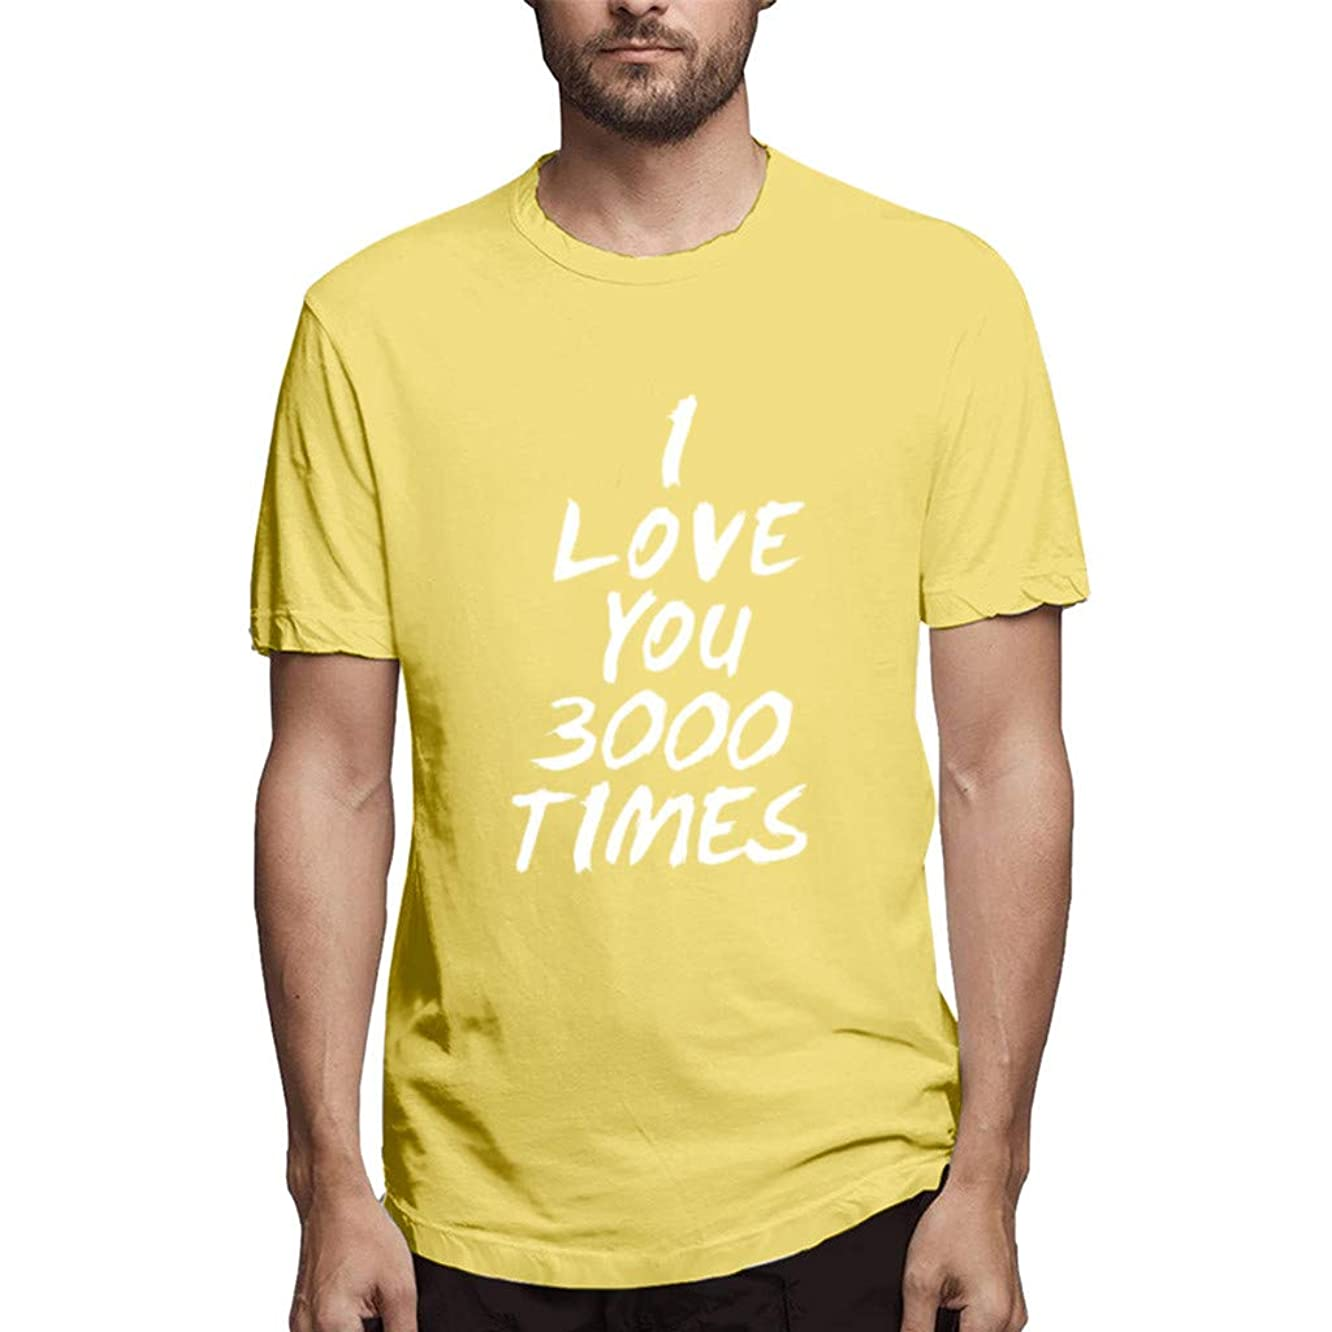 Couple T Shirt I Love You 3000 Print Short Sleeve Casual Loose Tops Blouse for Women Man Gilrs Boys CapsA